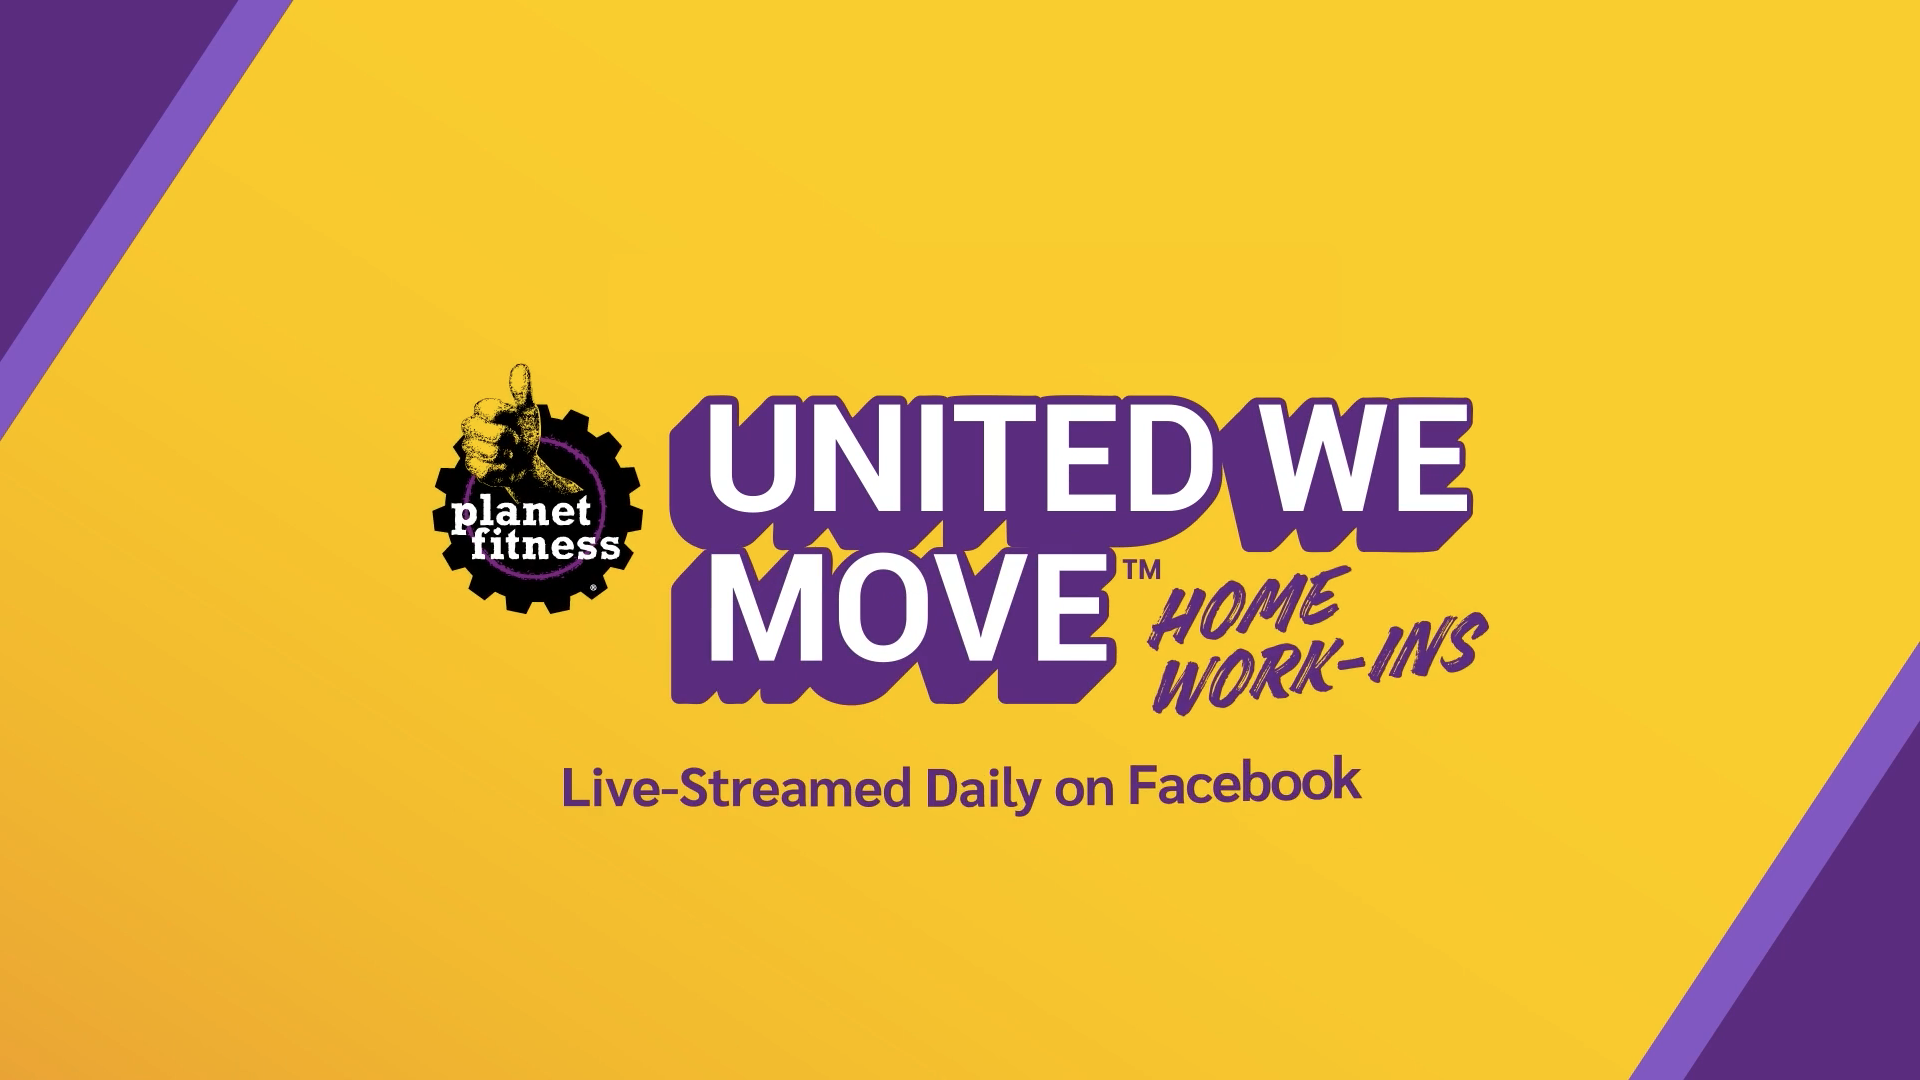 Planet Fitness: United We Move campaign.